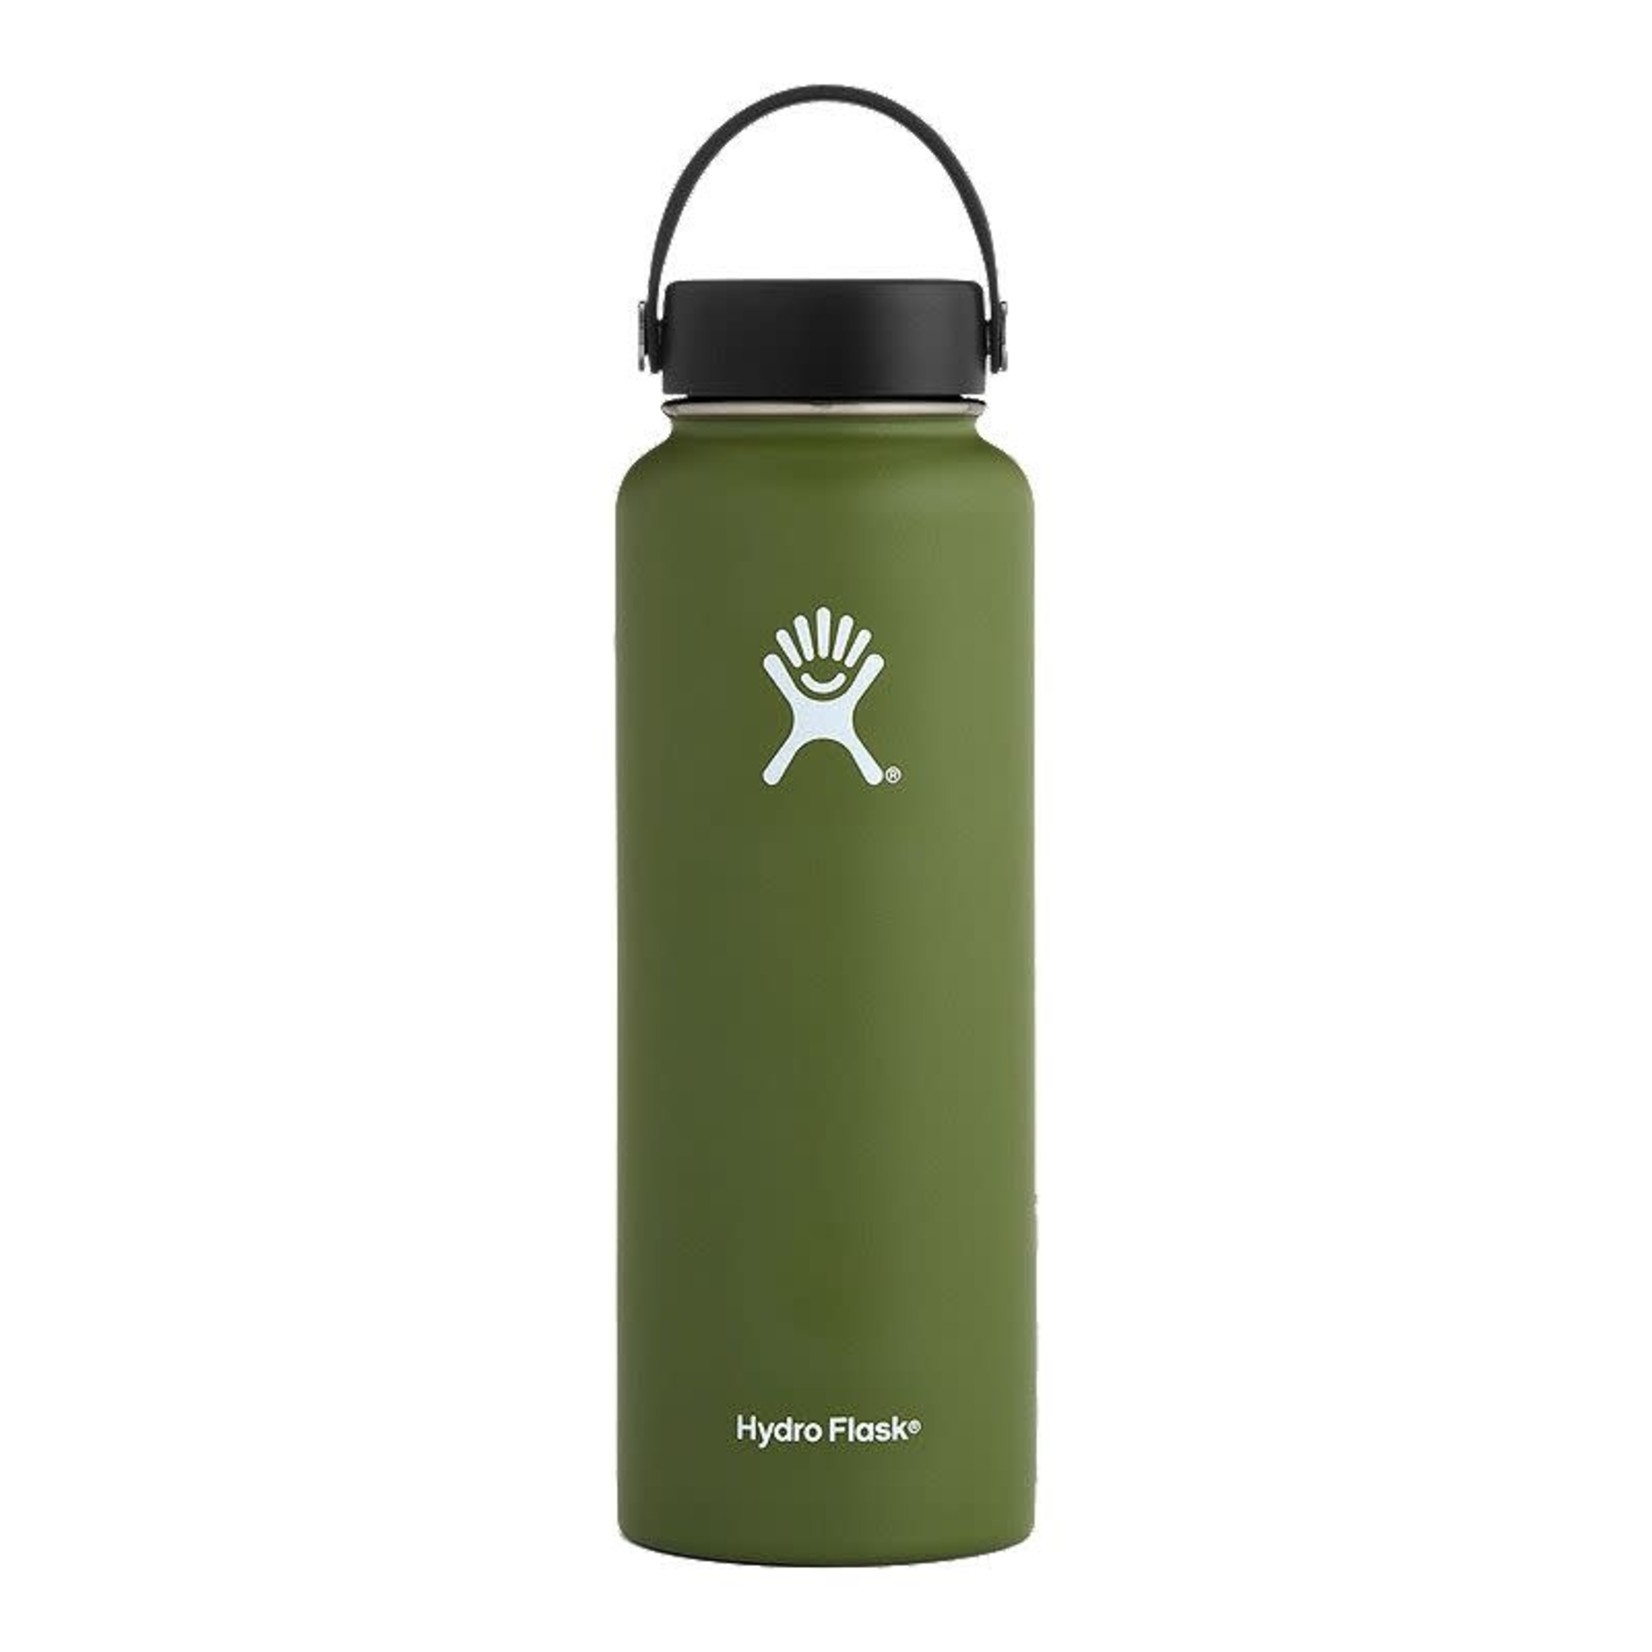 Hydro Flask Hydro Flask 40 oz Wide Mouth Water Bottle - Olive